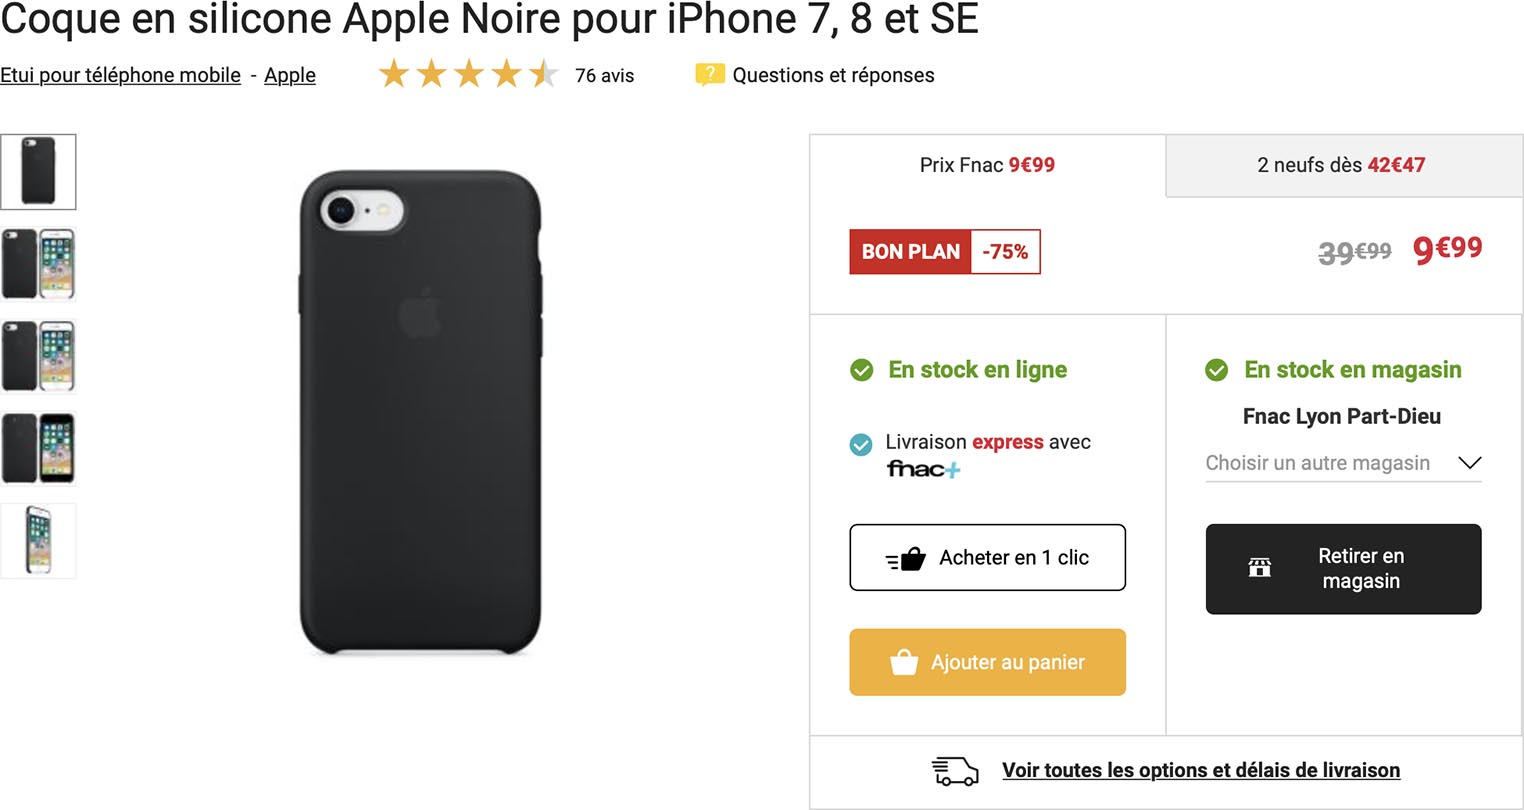 Coque silicone iPhoneSE Fnac